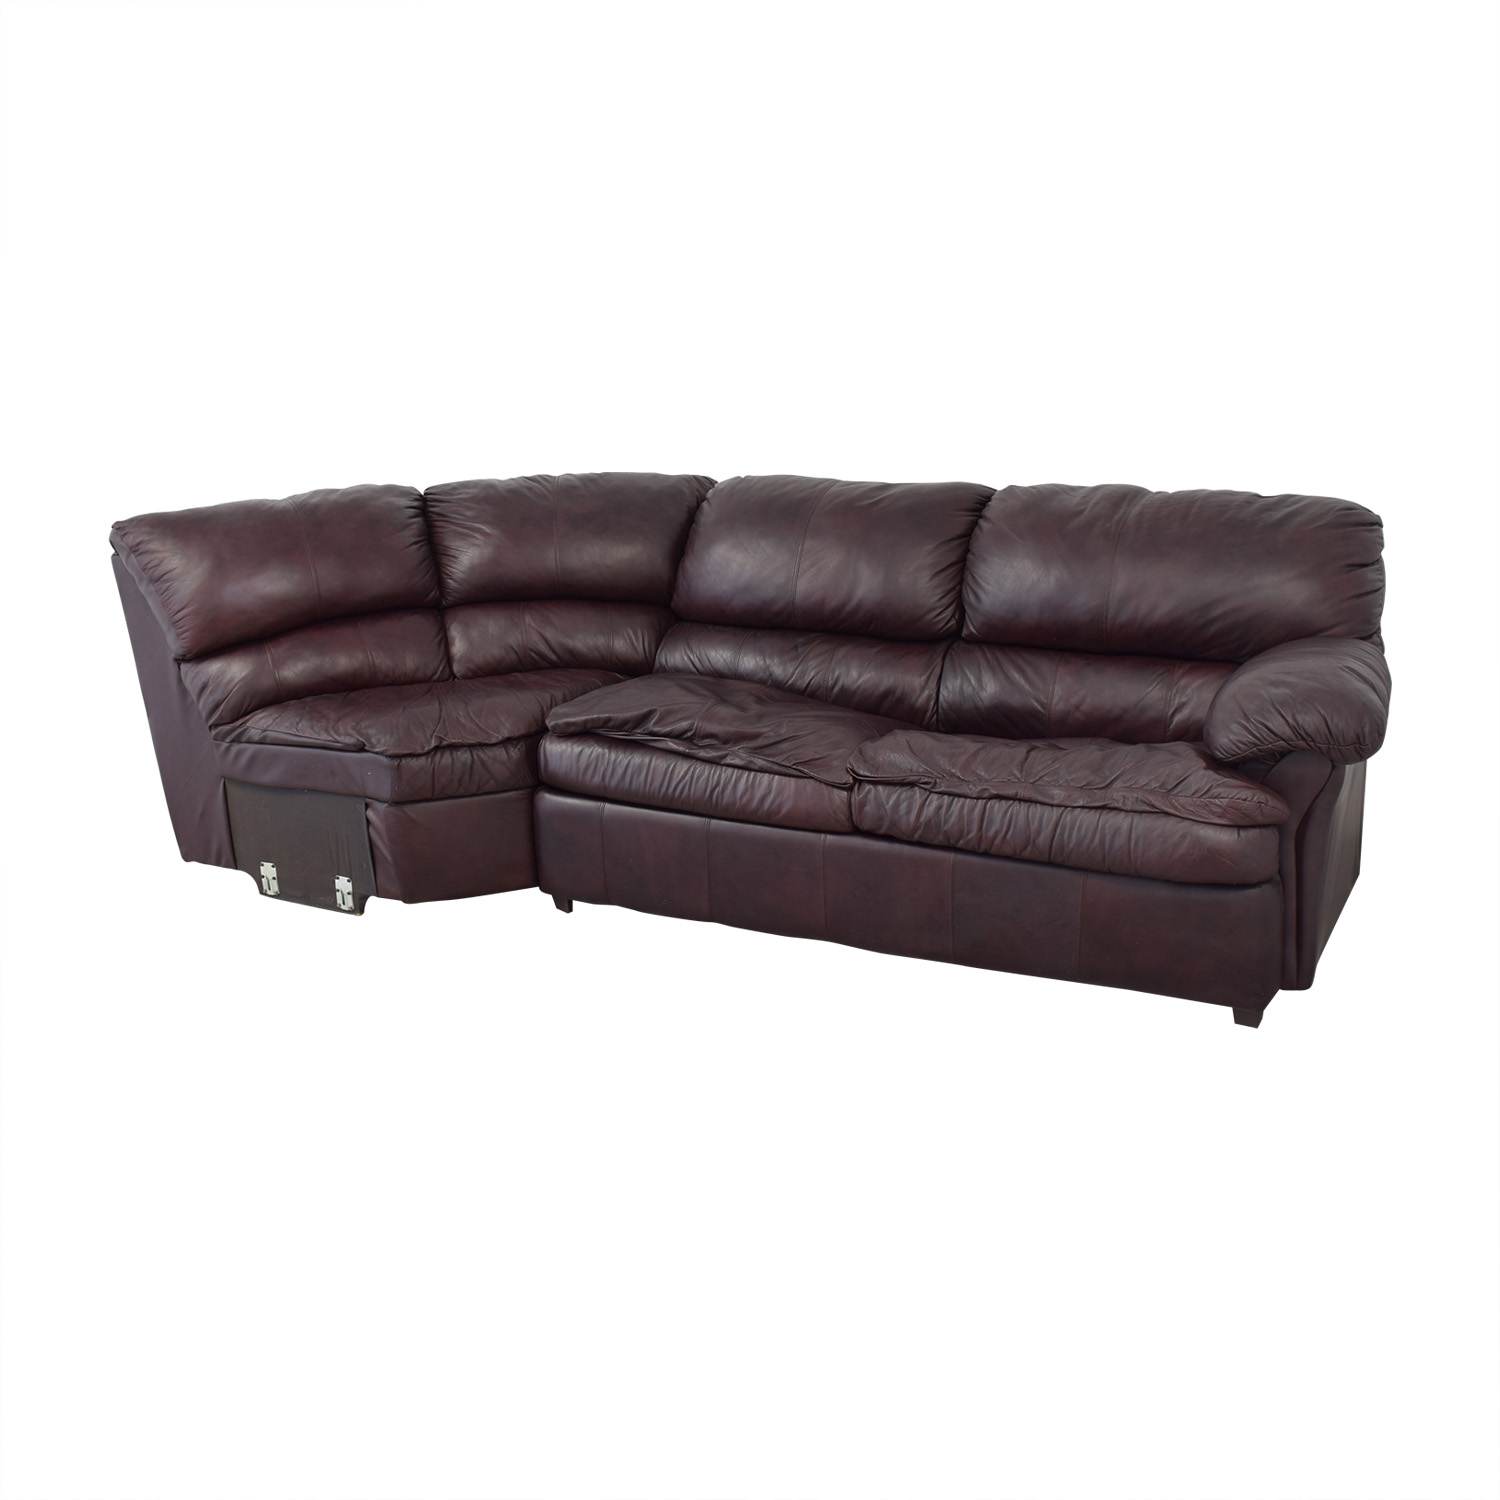 81 Off Leather Sleeper Sectional Sofa Bed Sofas